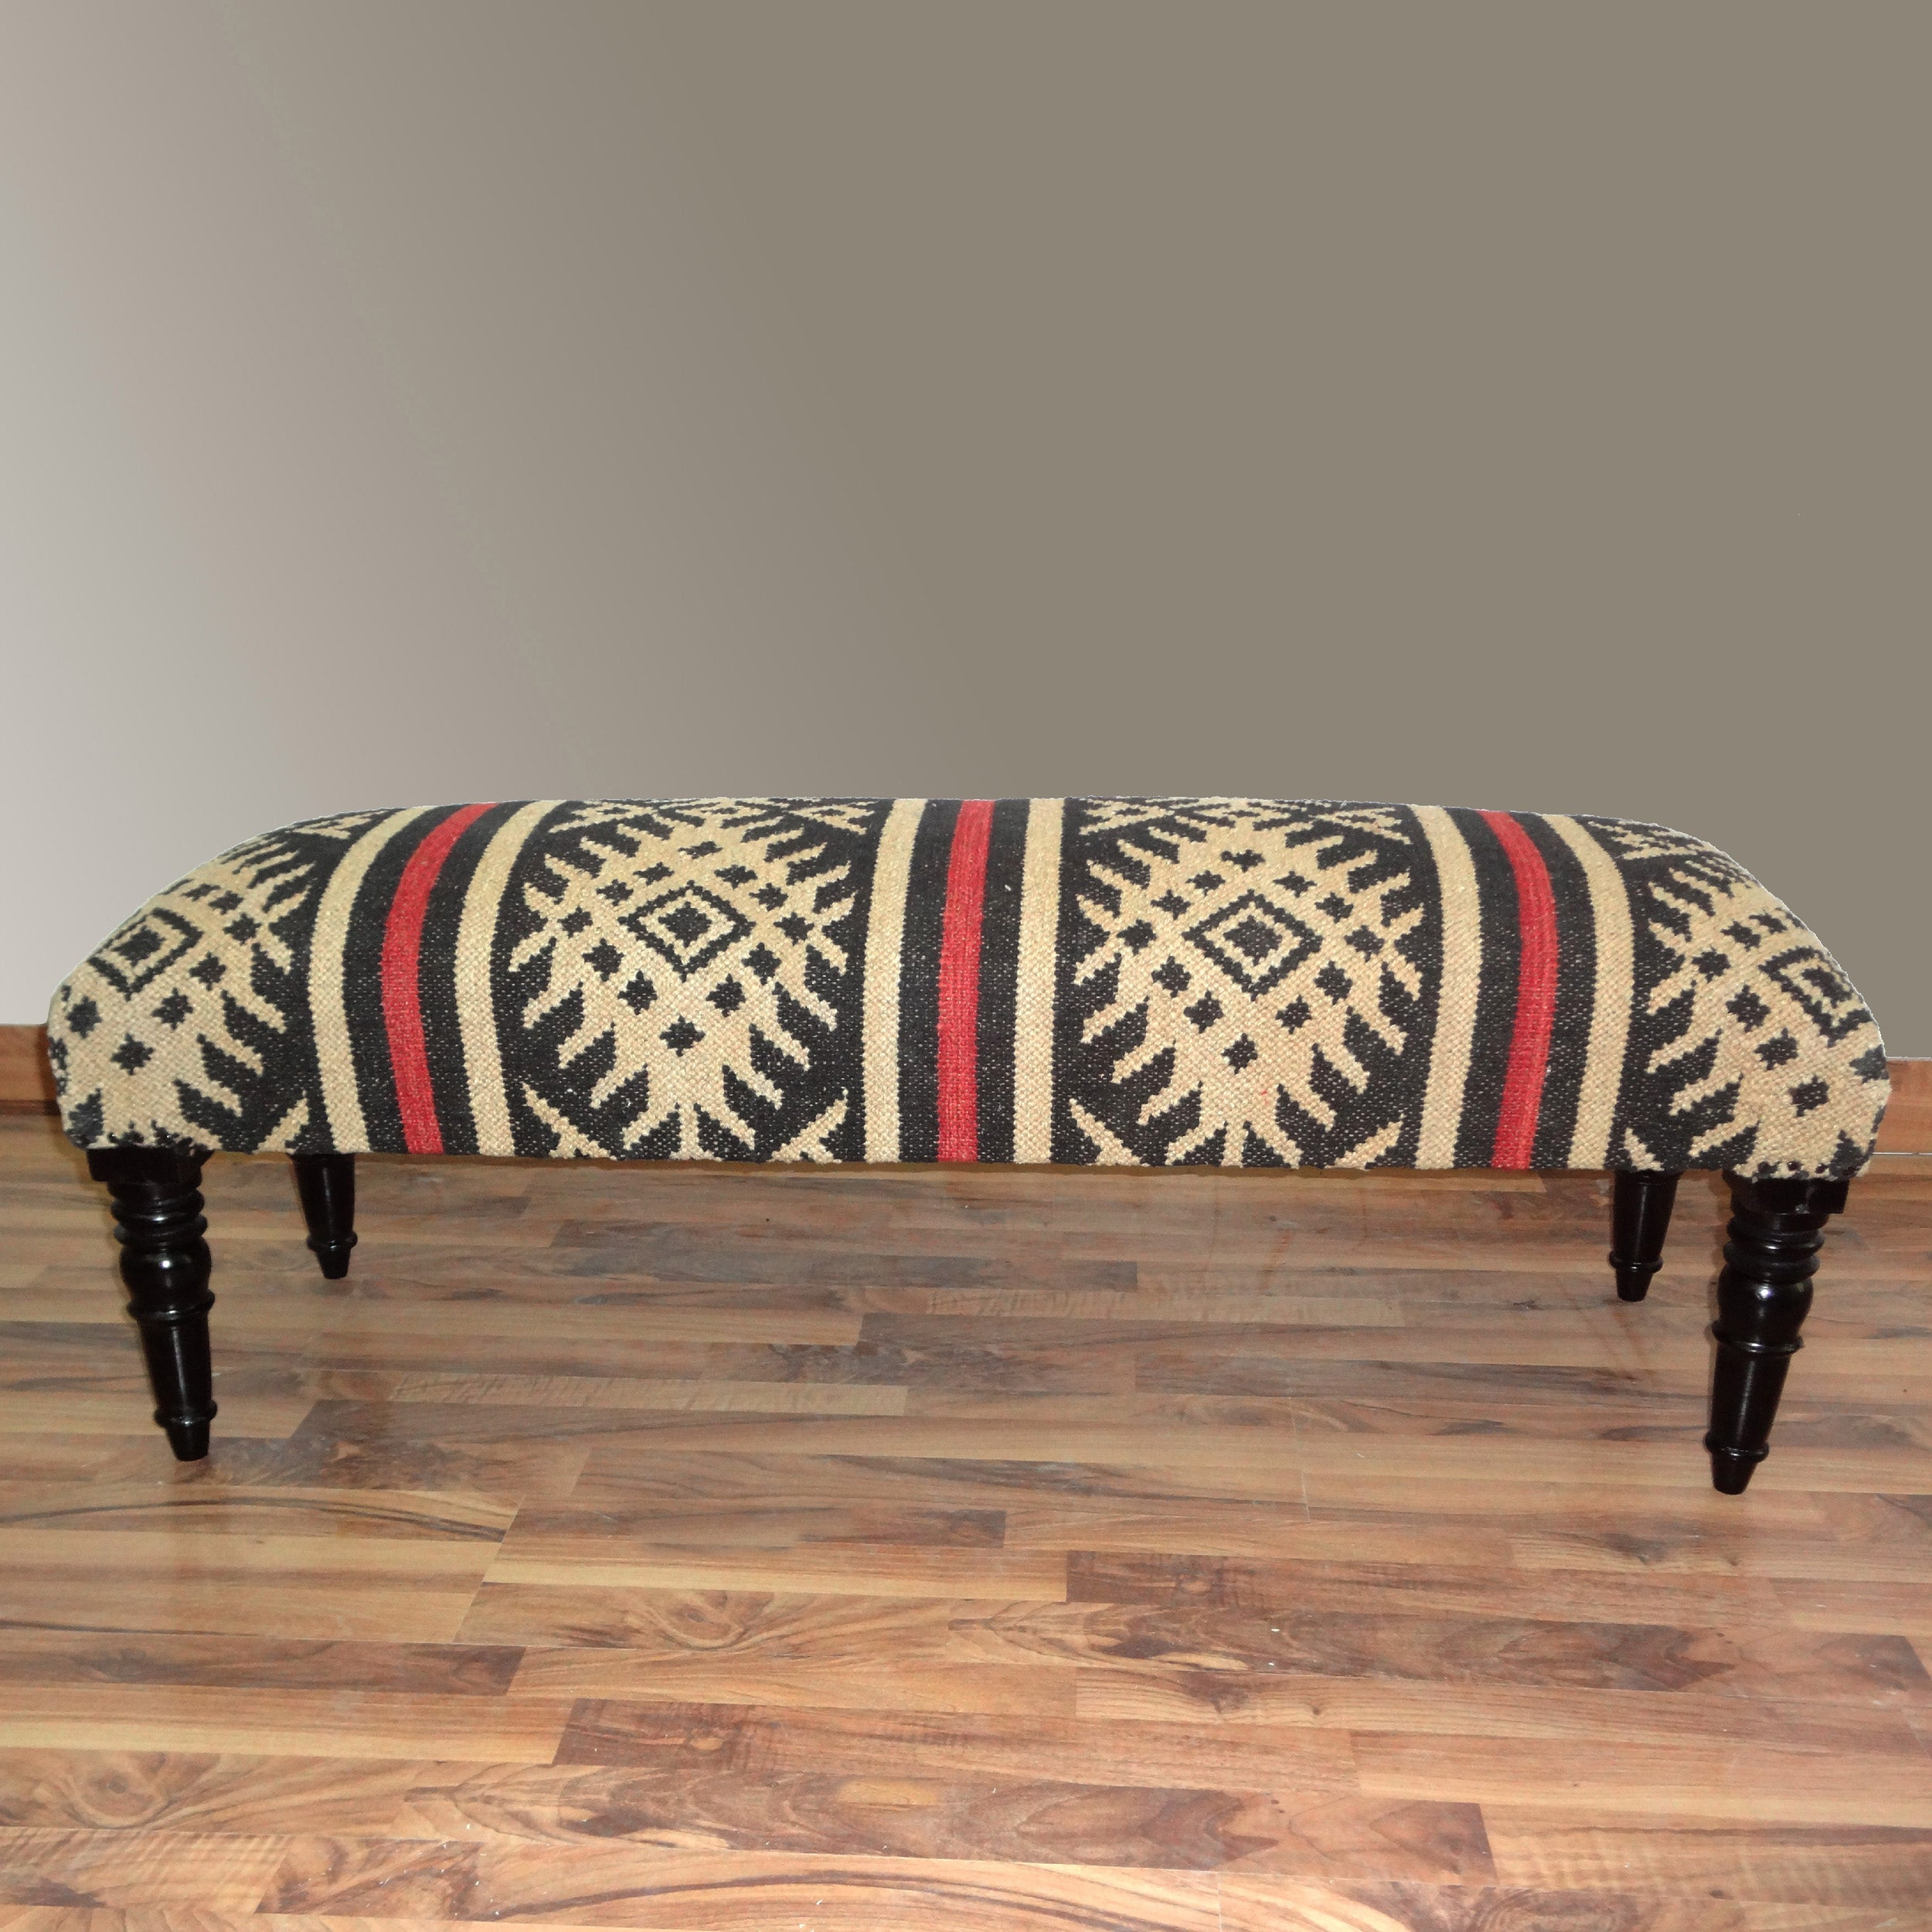 nuLOOM Hand-upholstered Country Multi Wood Bench